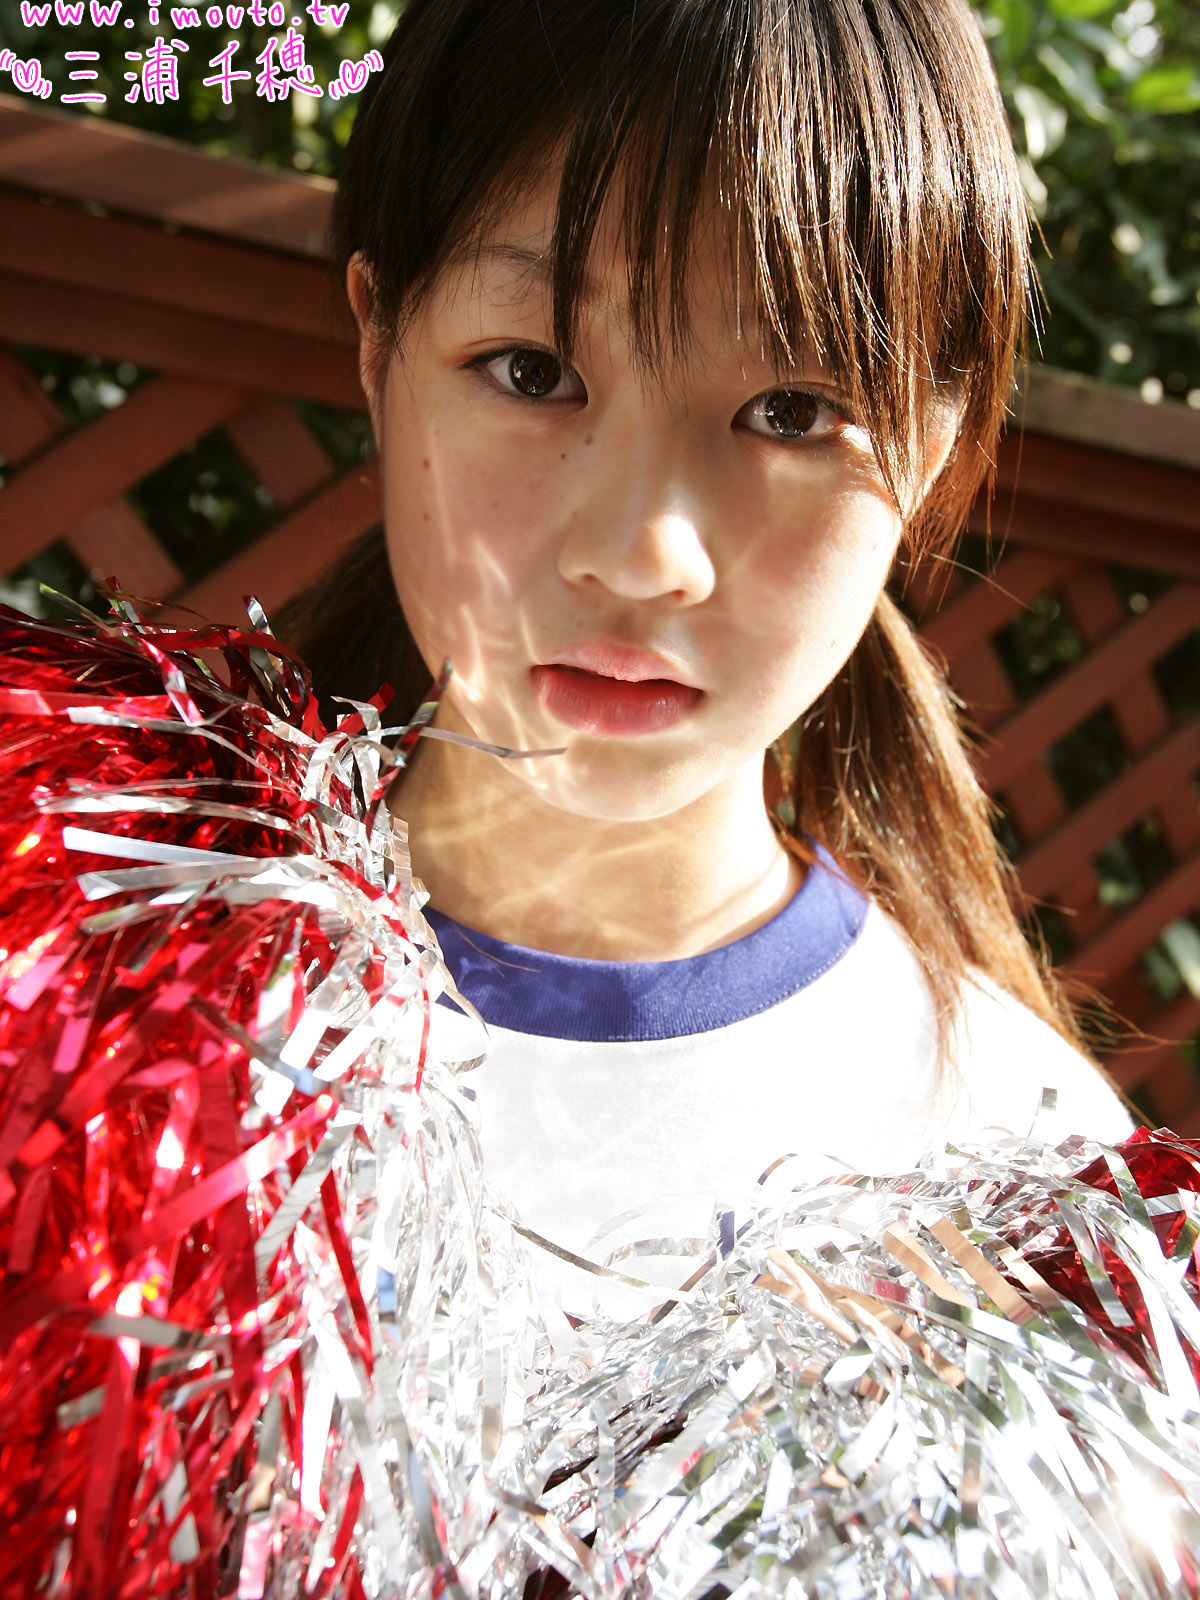 Imouto TV Idol U15 http://kootation.com/imouto-tv-photo-gallery-picture-japanese-idol-girls-u15-dvd/en.topictures.com*img*28224603*1/